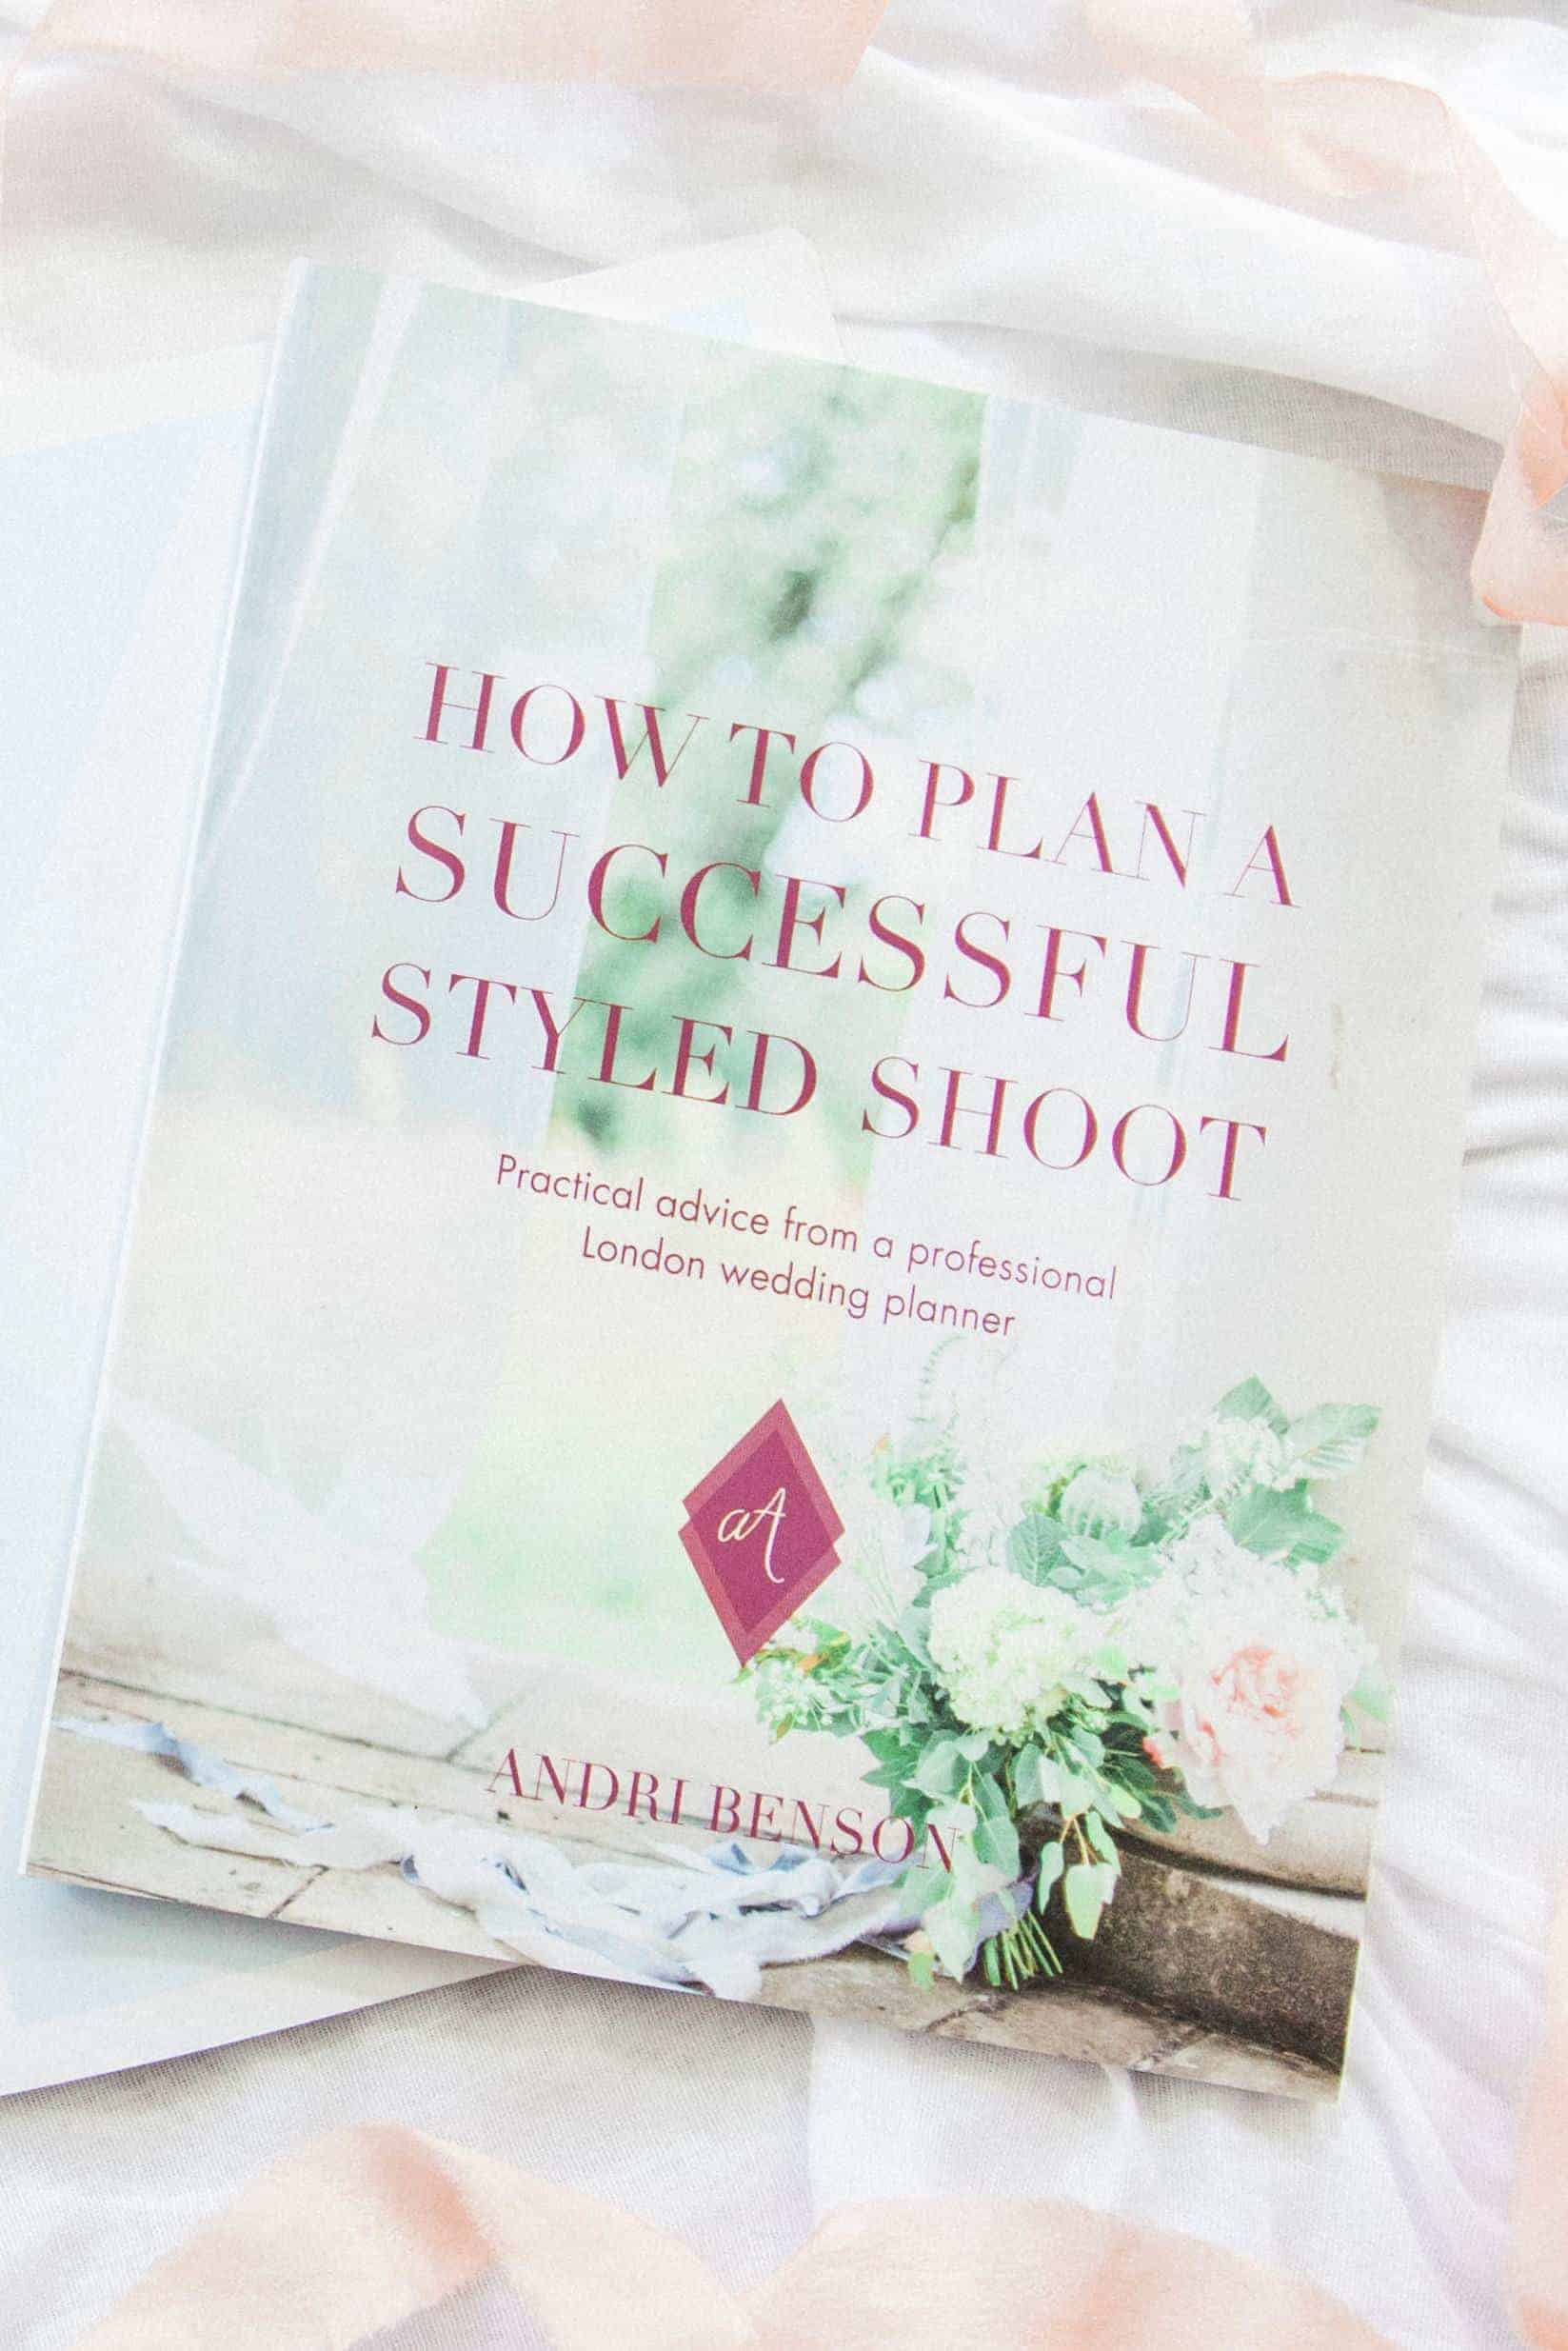 wedding industry styled shoot ebook on table